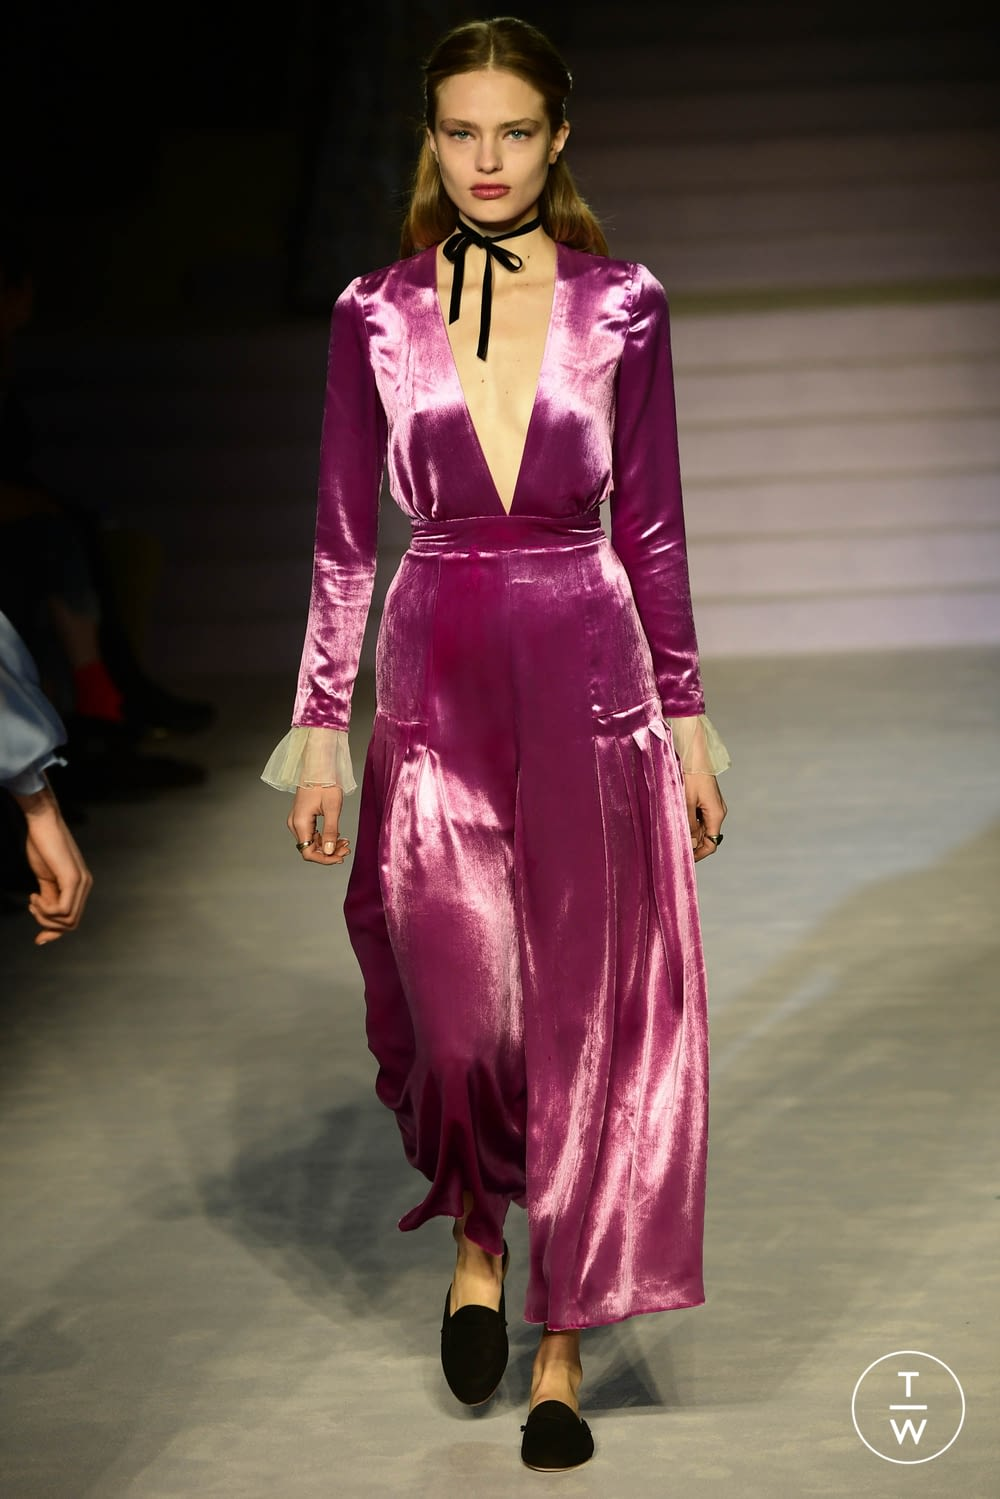 44cab6661849 On the Runway   Fashion Week - Fashion Designers - LibGuides at ...